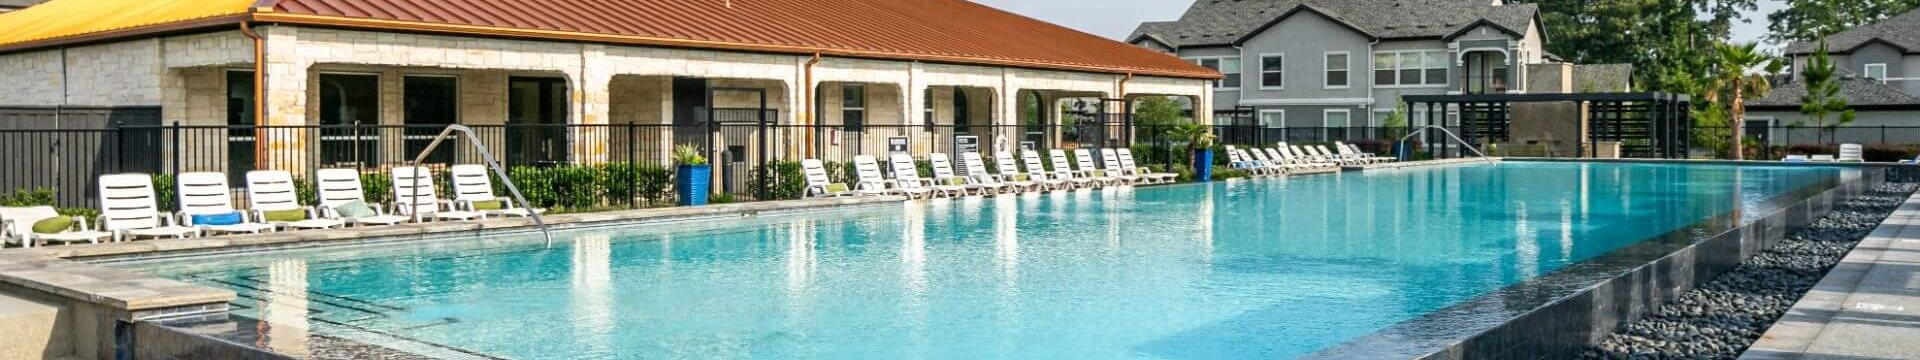 Swimming Pool With Lounge Chairs at Mansions Woodland, Conroe